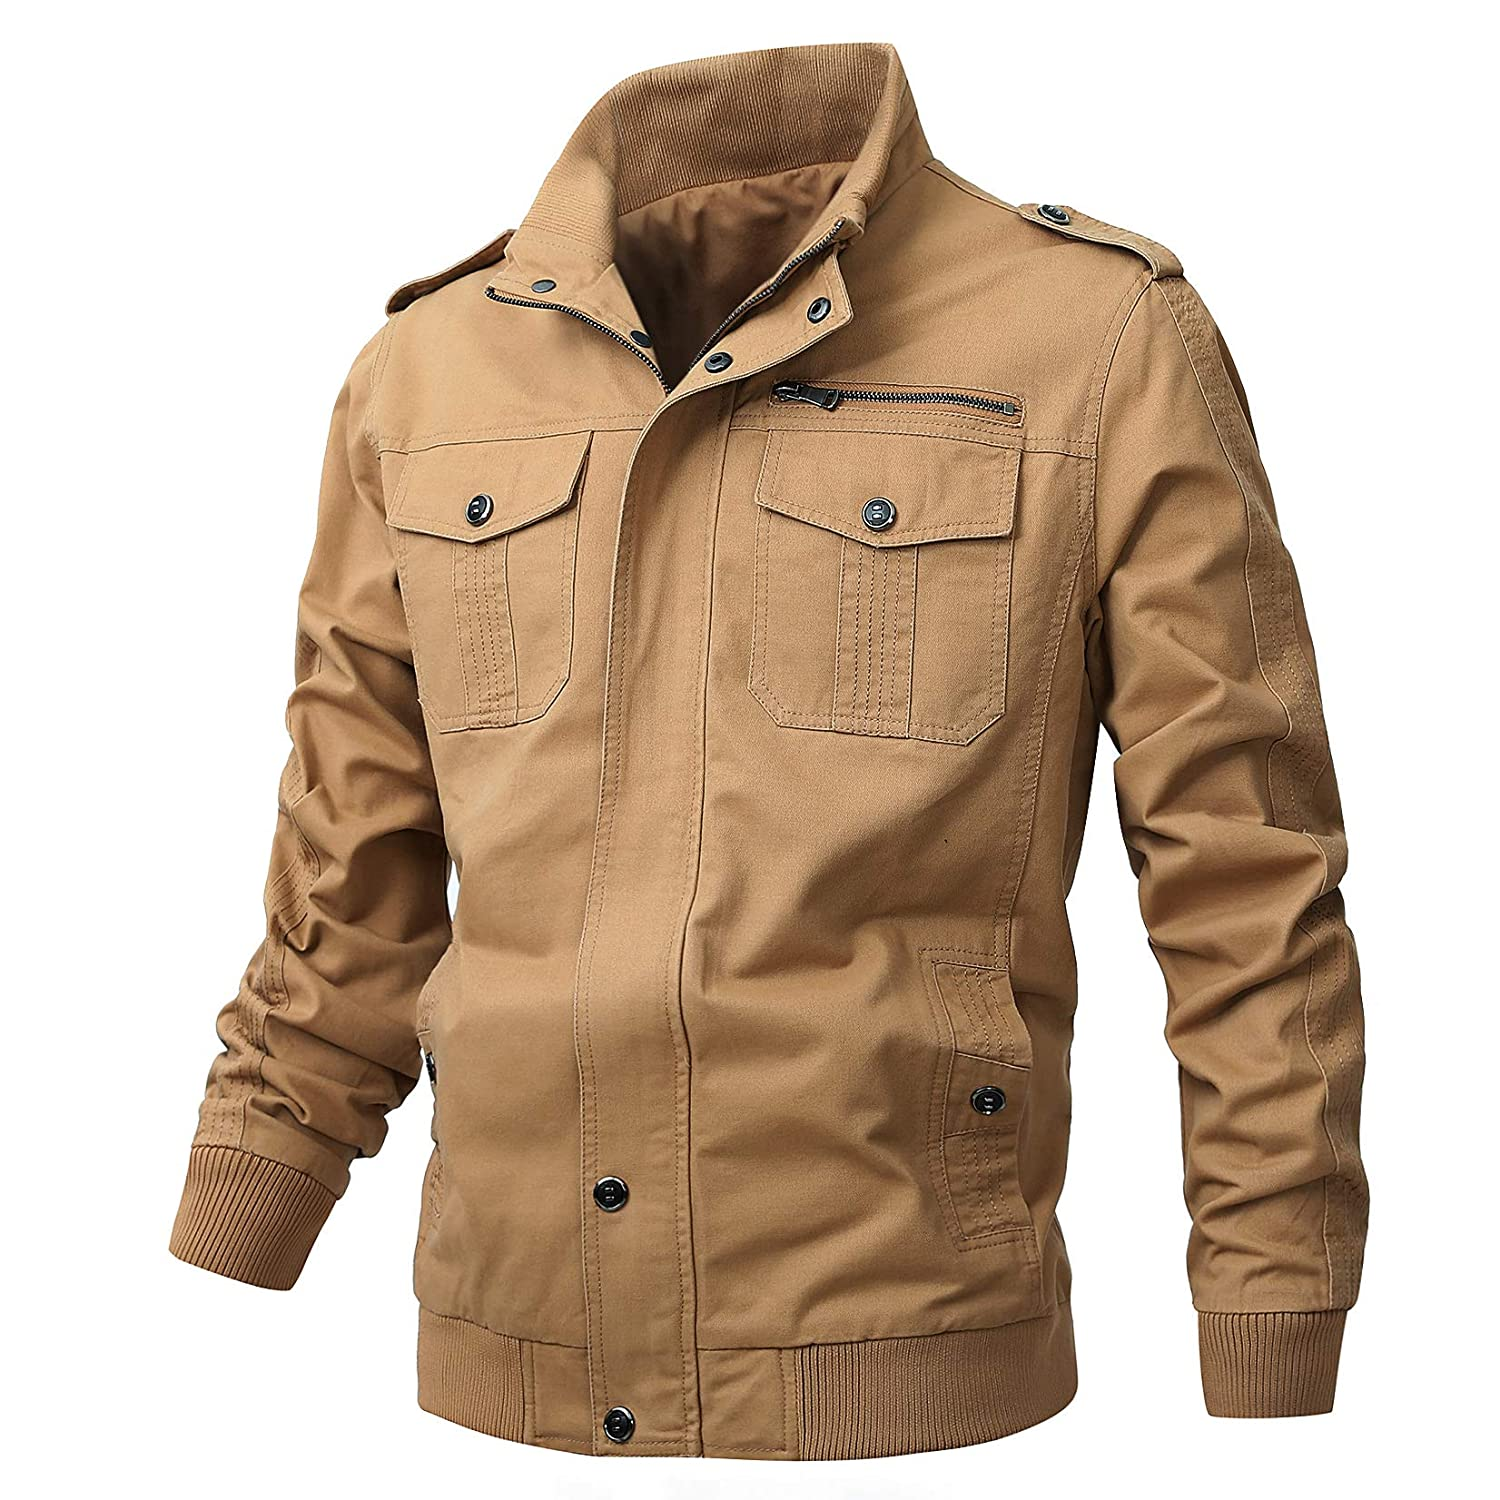 Ousui Casual Coat Soild Cotton Full Zip Windbreaker Outdoor Windproof Military Jacket for Men